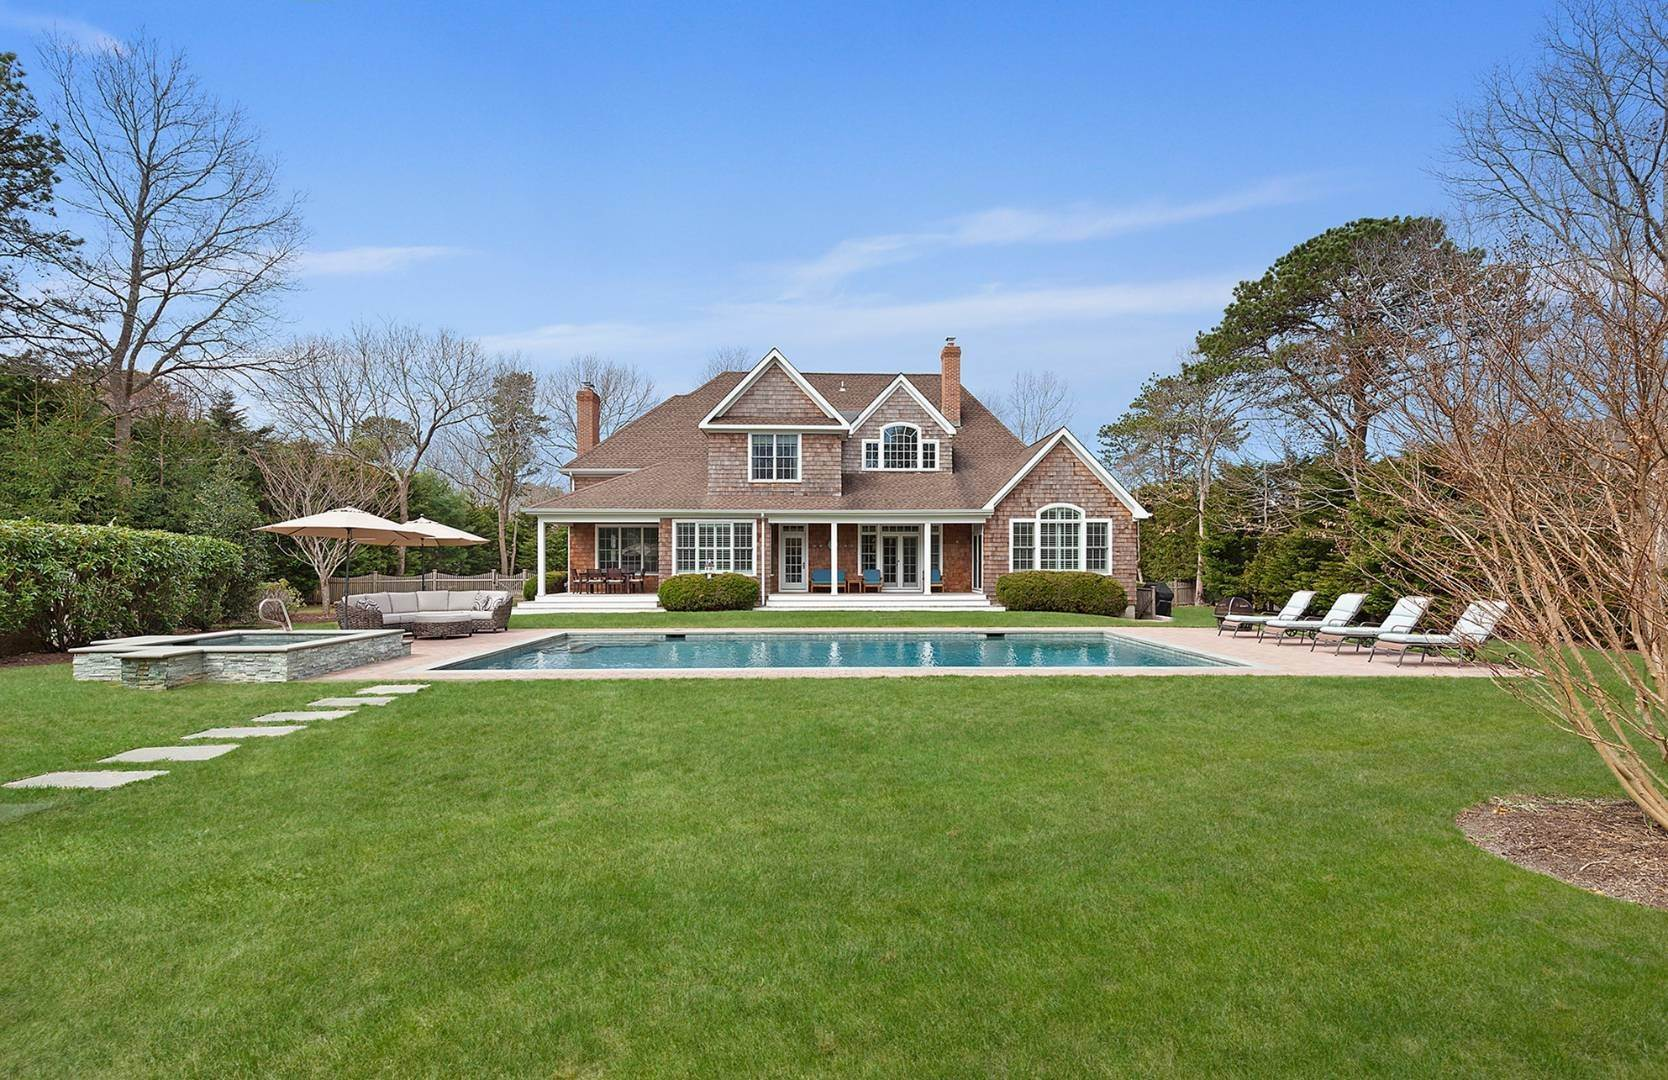 Single Family Home for Sale at Quogue Village With Pool And Tennis 15 Post Fields Lane, Quogue Village, NY 11959